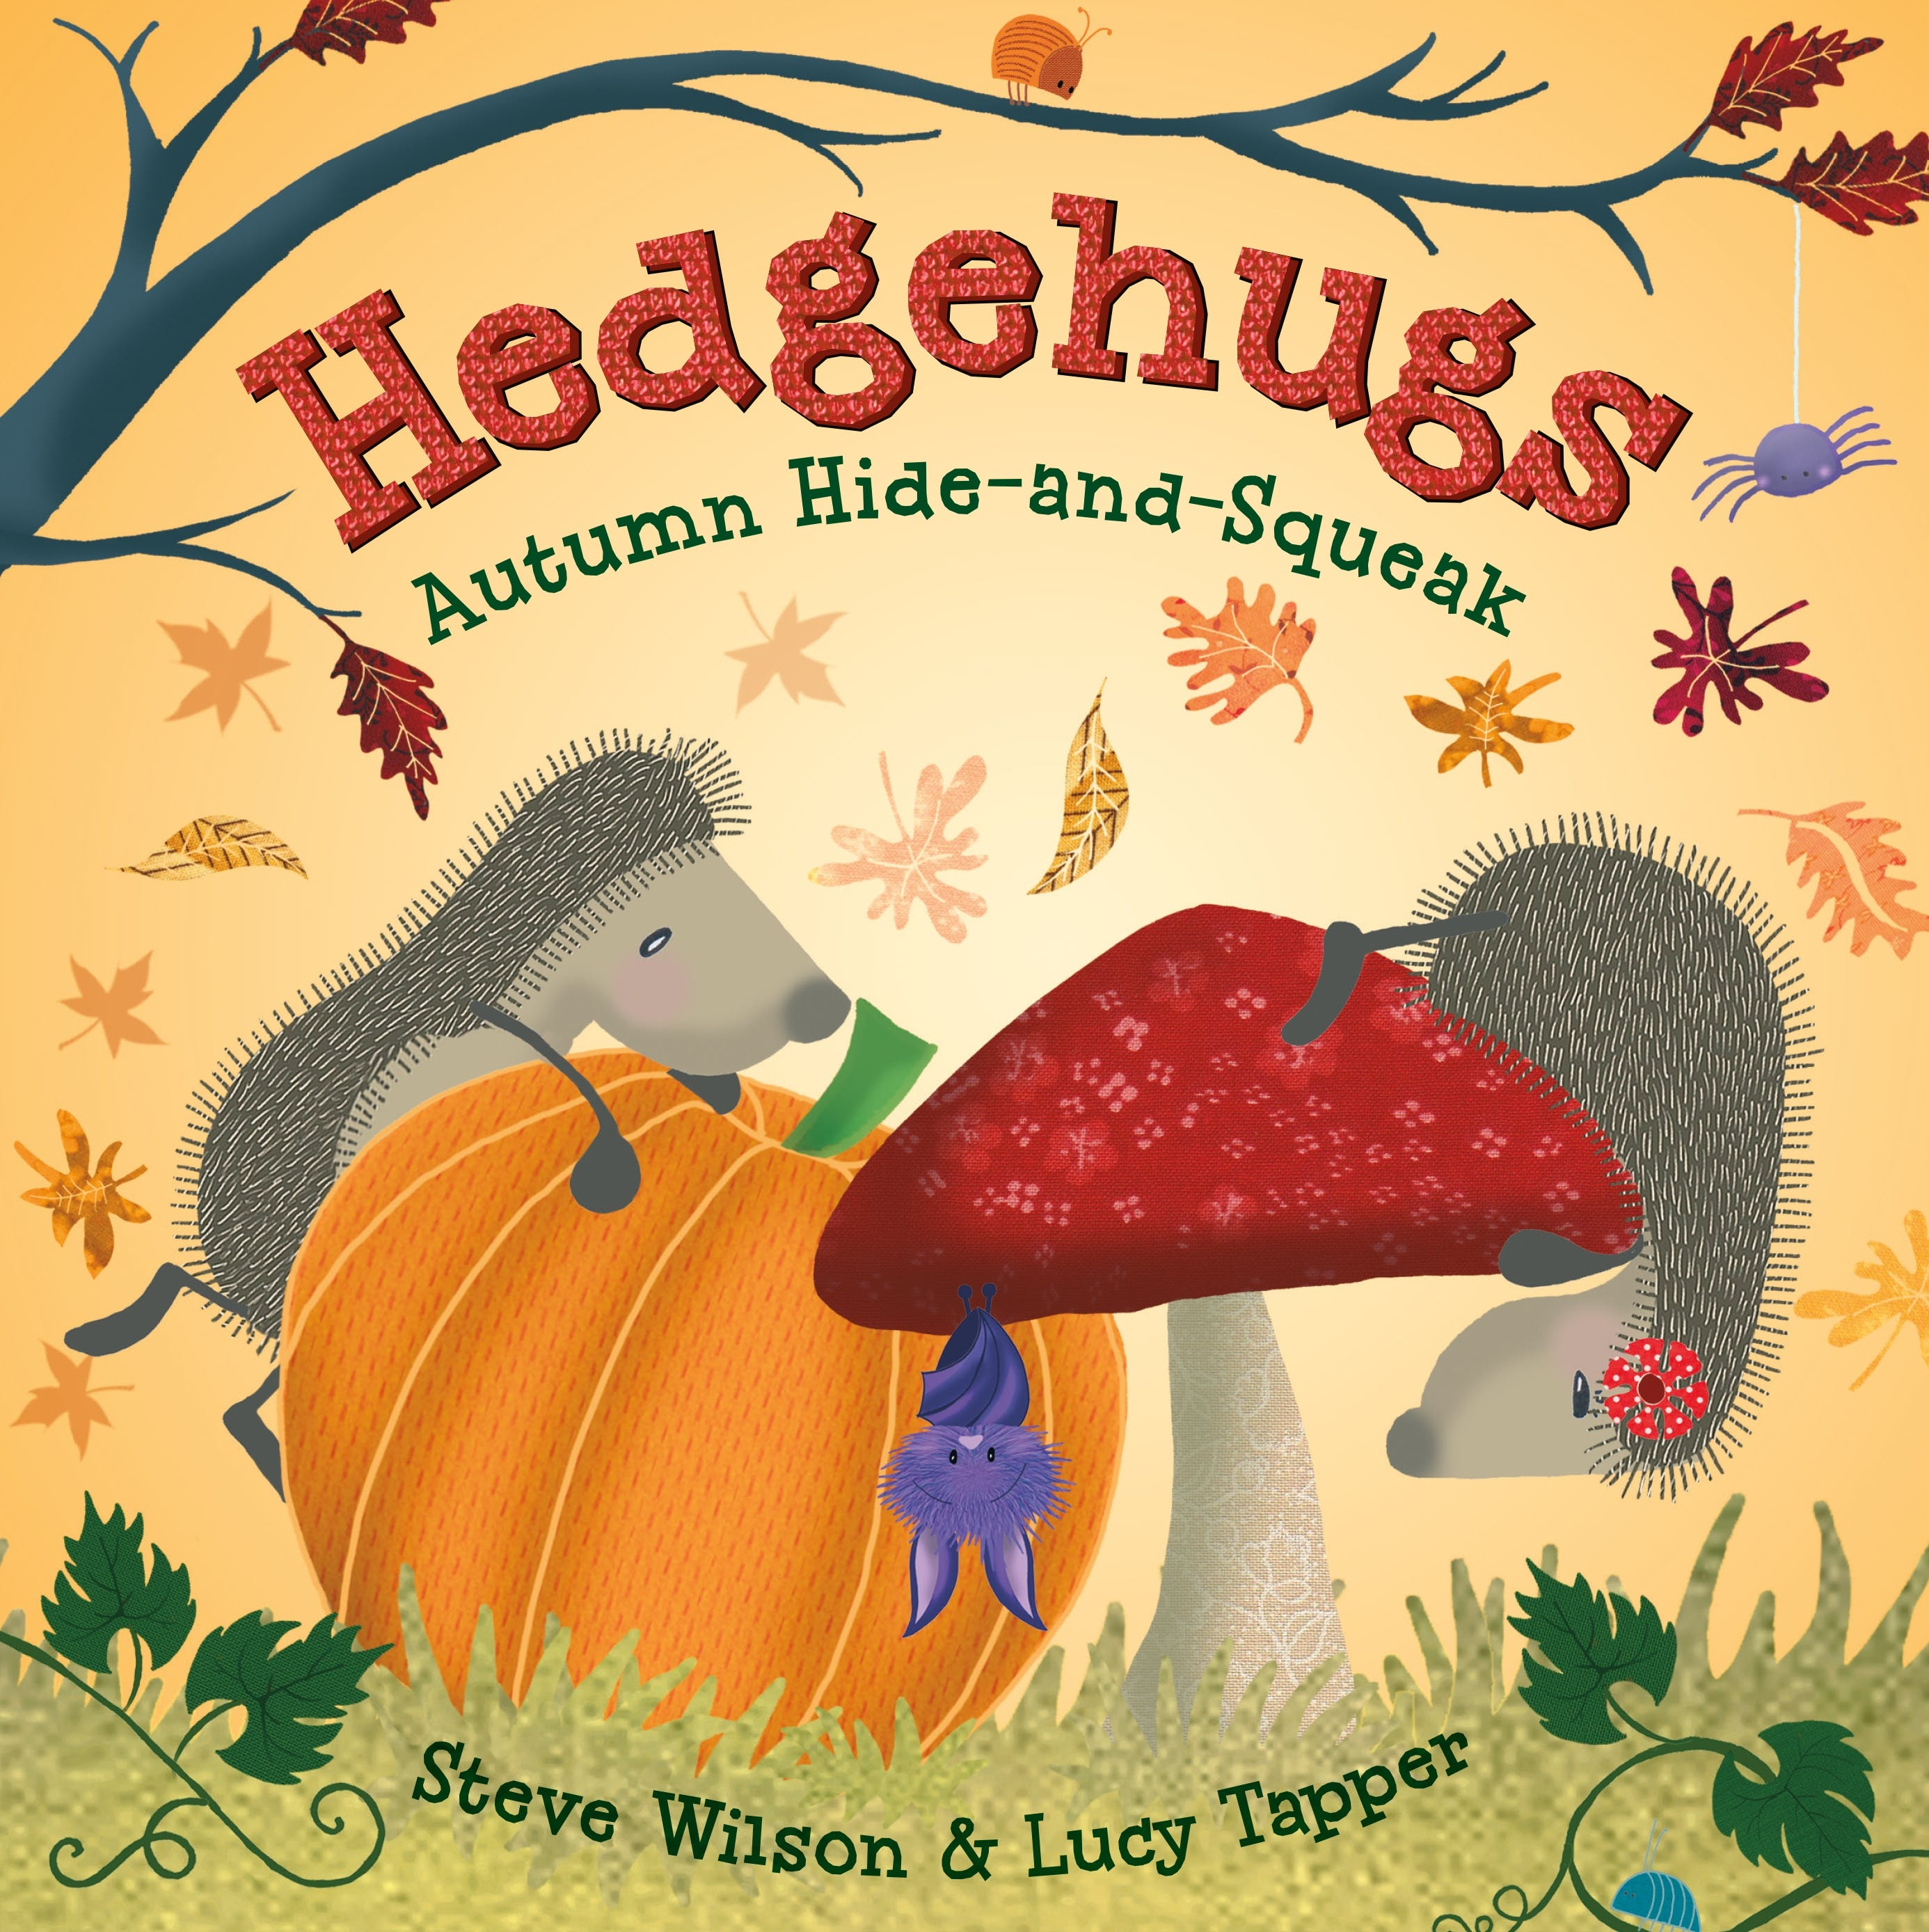 Image of Hedgehugs: Autumn Hide-and-Squeak